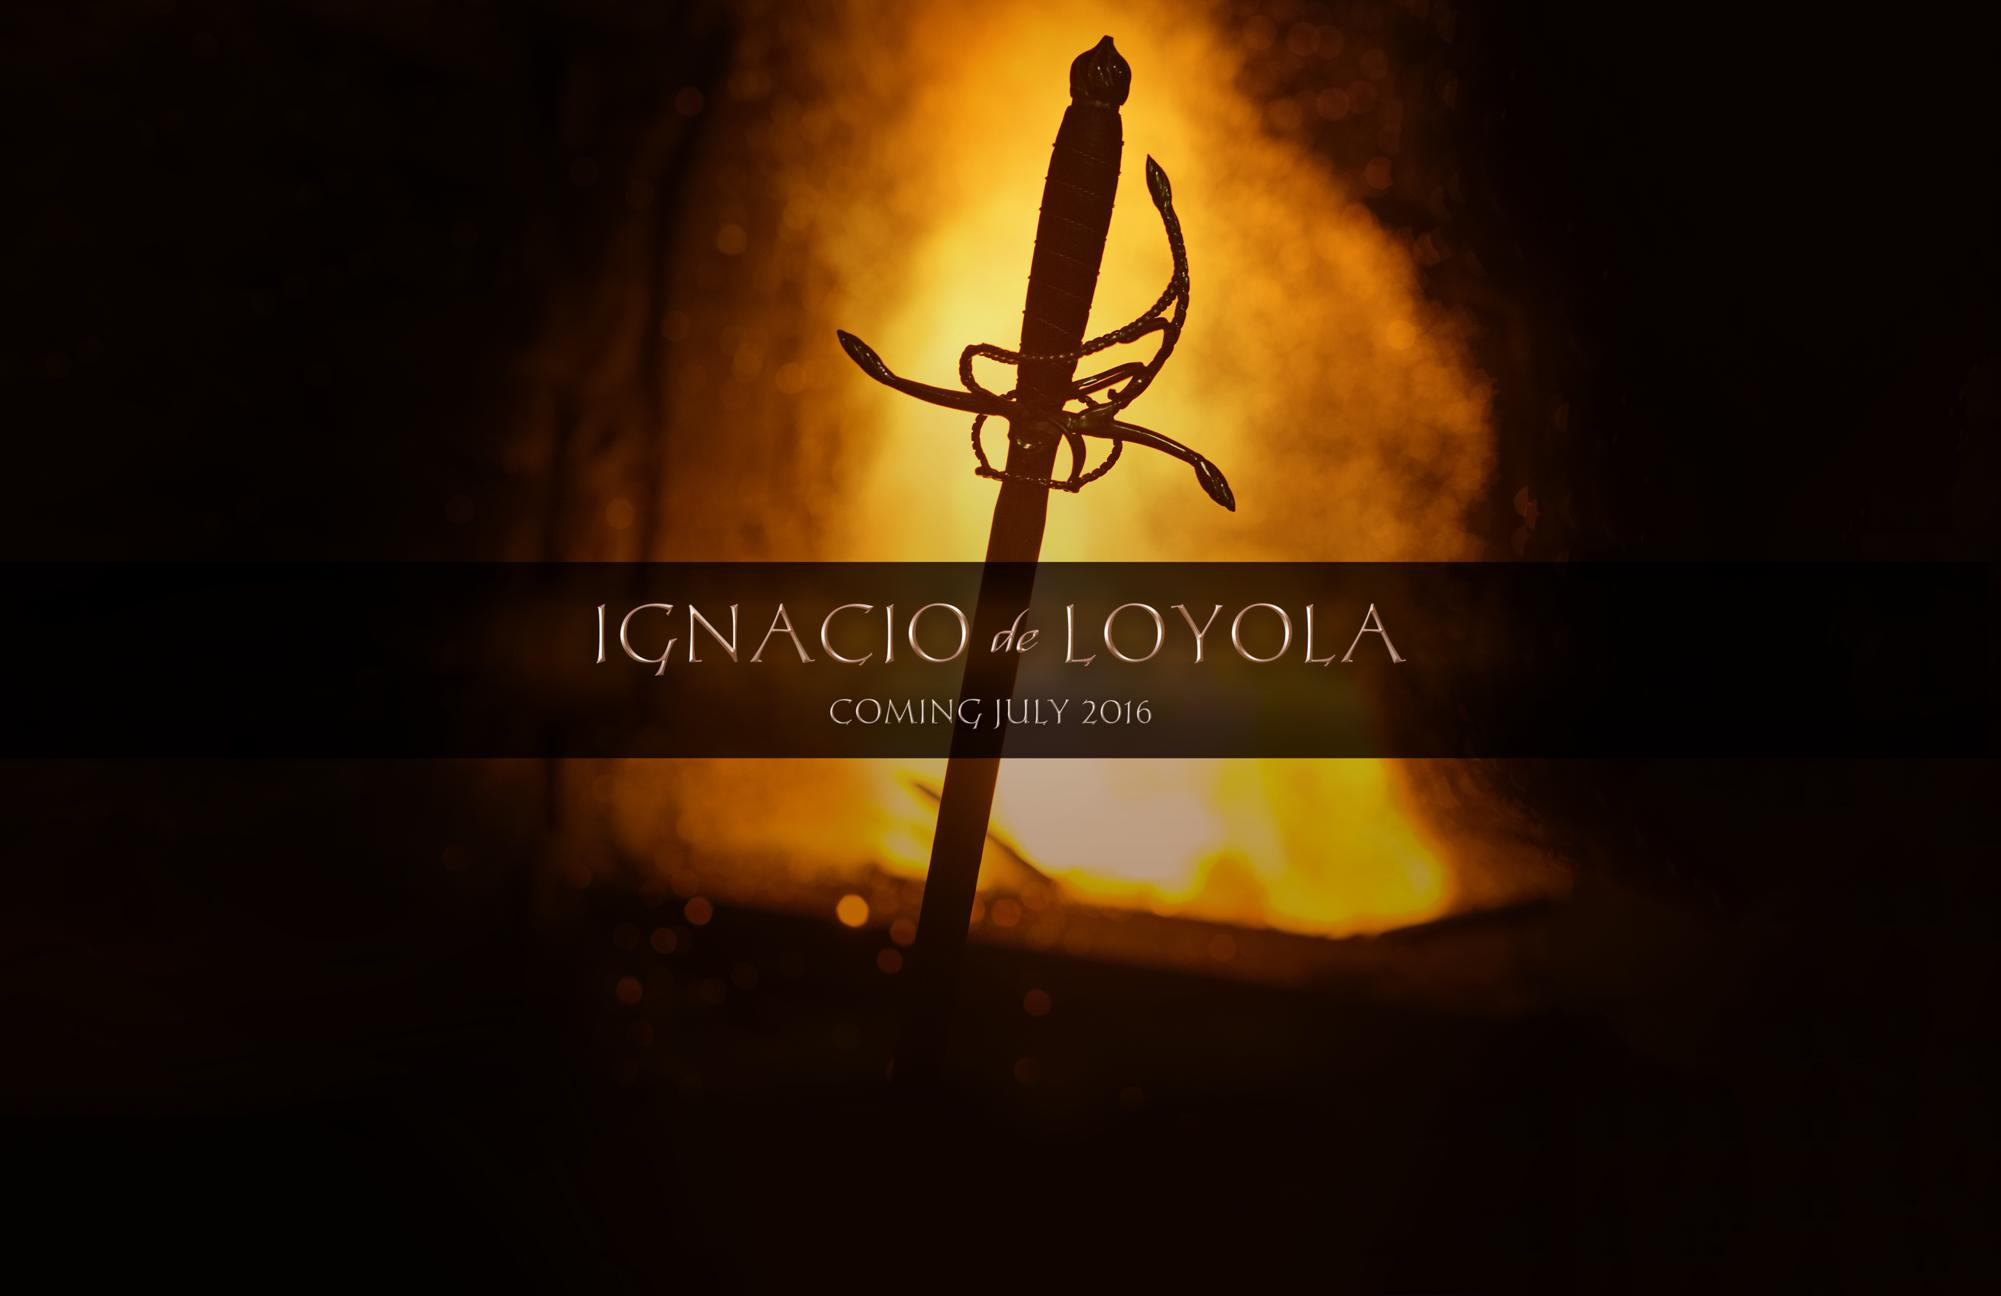 ignacio de loyola full movie download